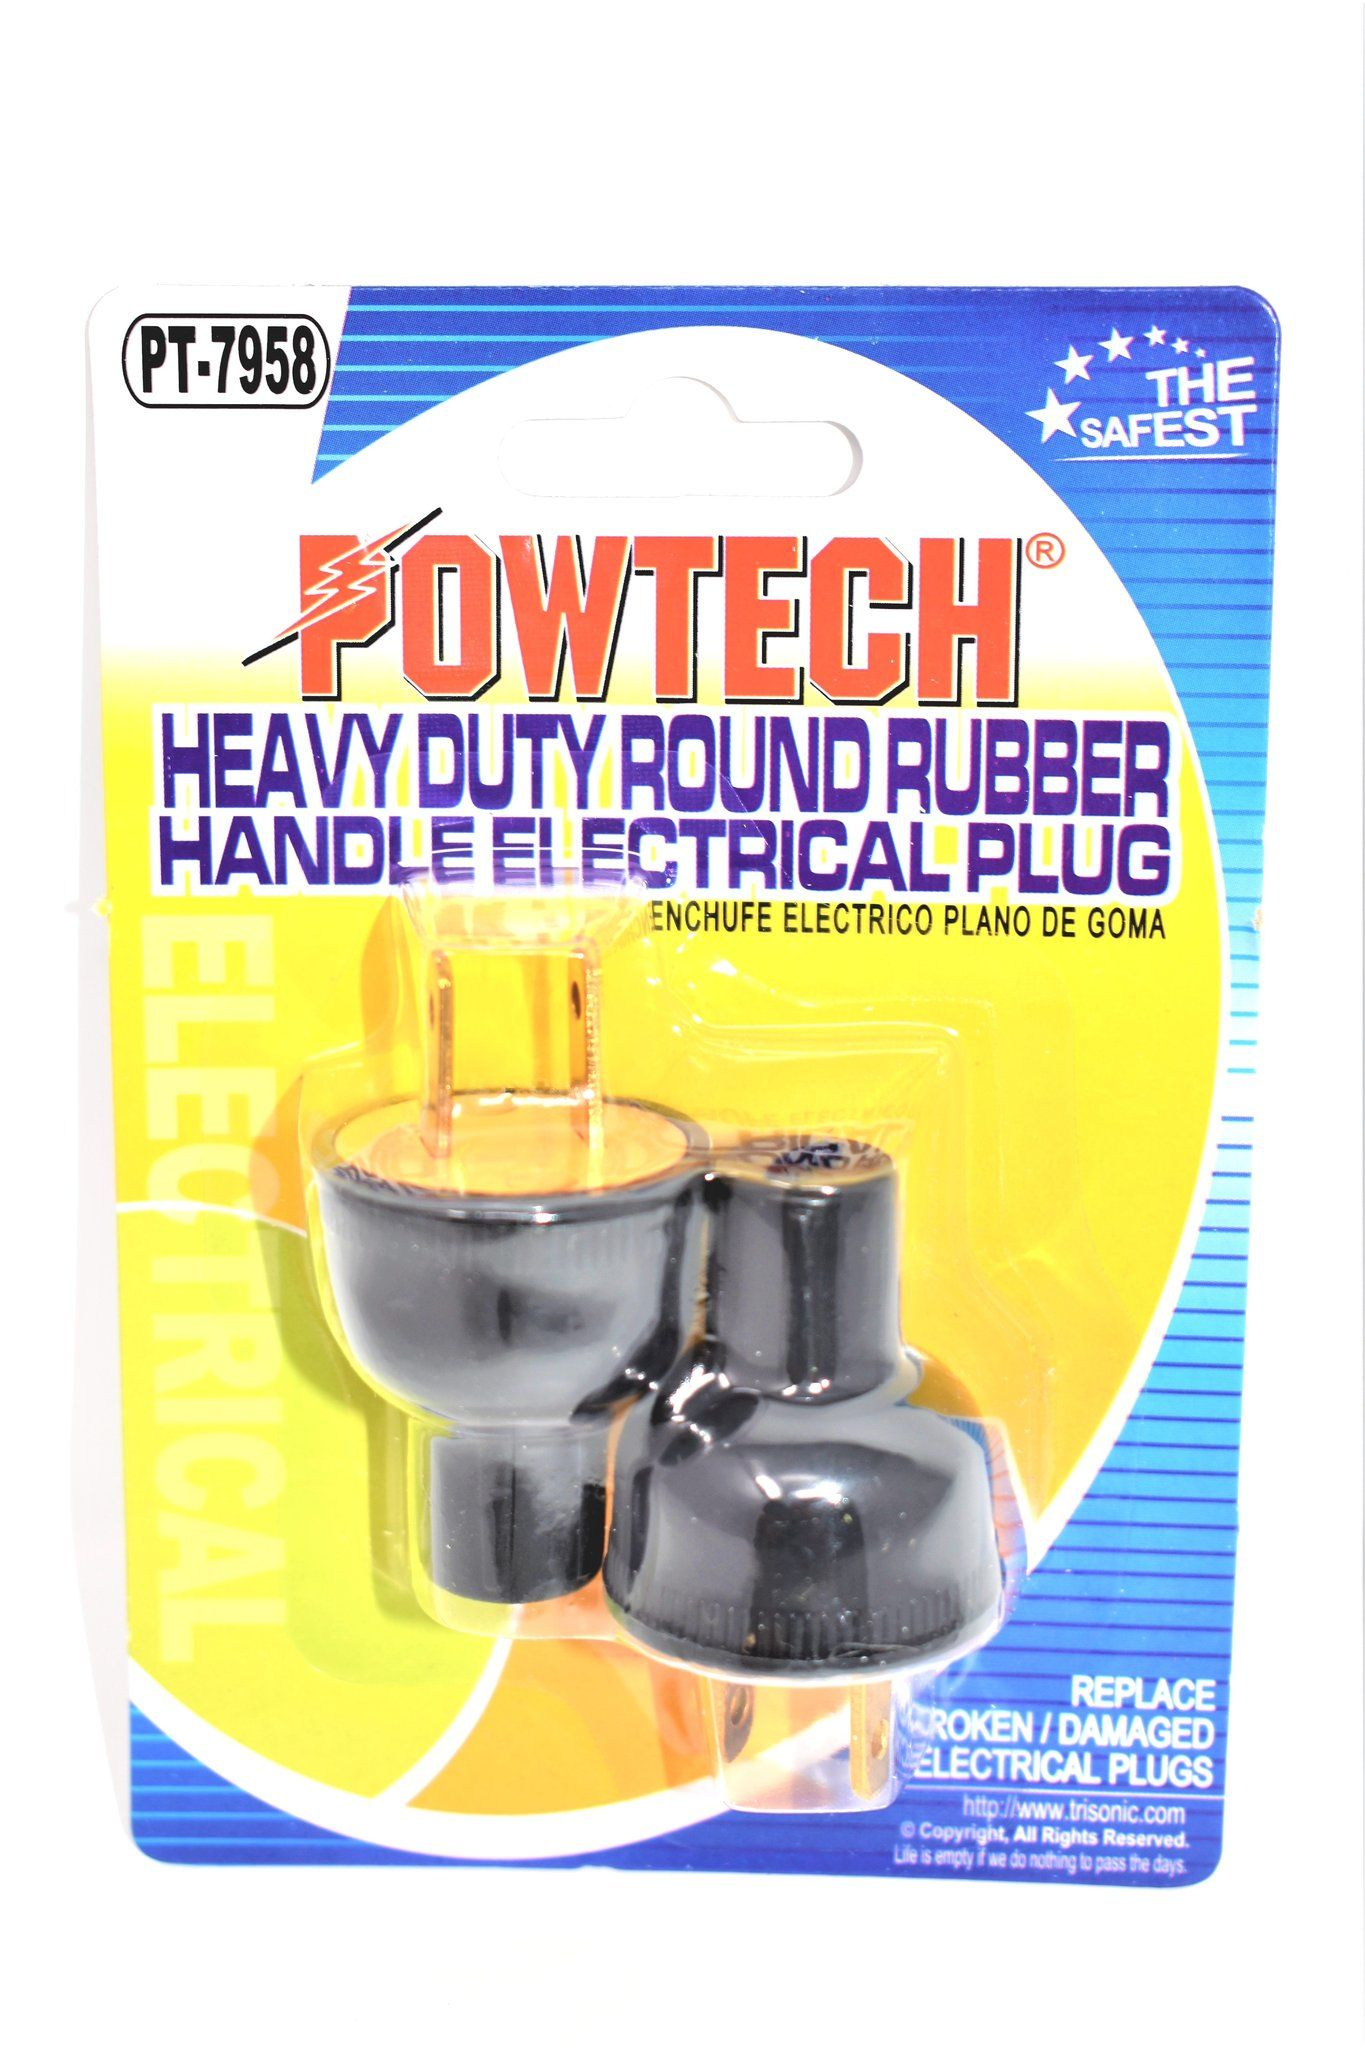 Heavy Duty Round Rubber Handle Electrical Plug 2 Ct Plugs Electricity Heavy Duty